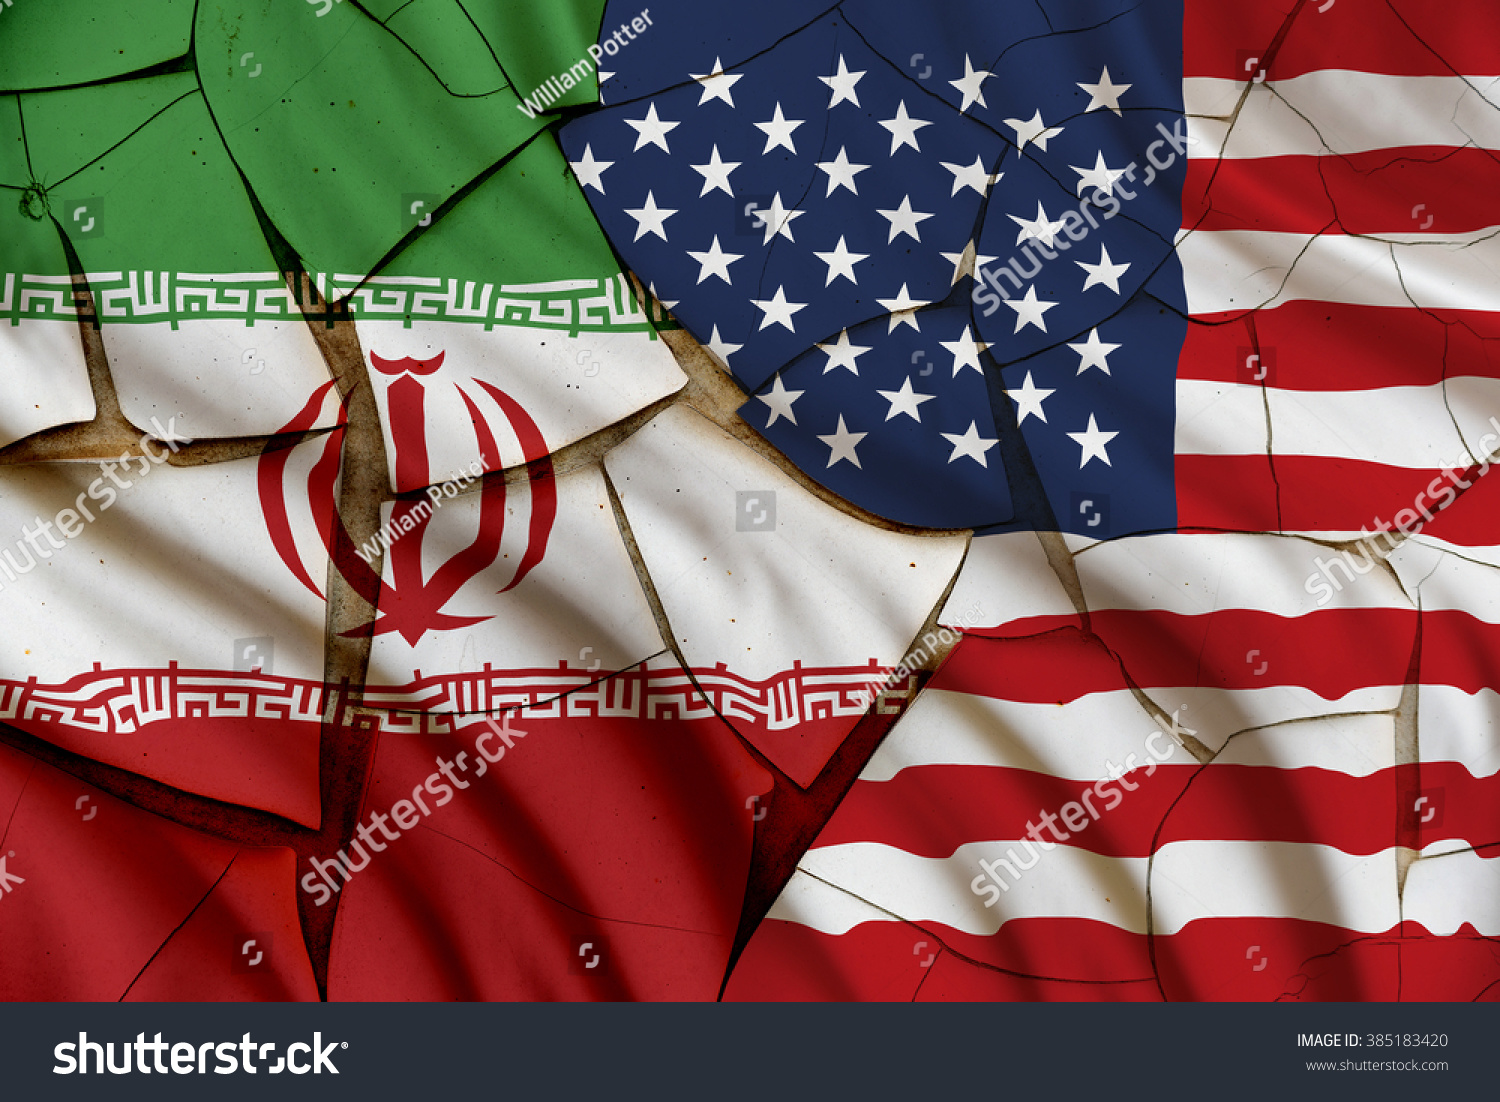 Flags iran usa symbol conflict between stock illustration 385183420 flags of iran and usa a symbol of conflict between 2 nations tehran and buycottarizona Choice Image